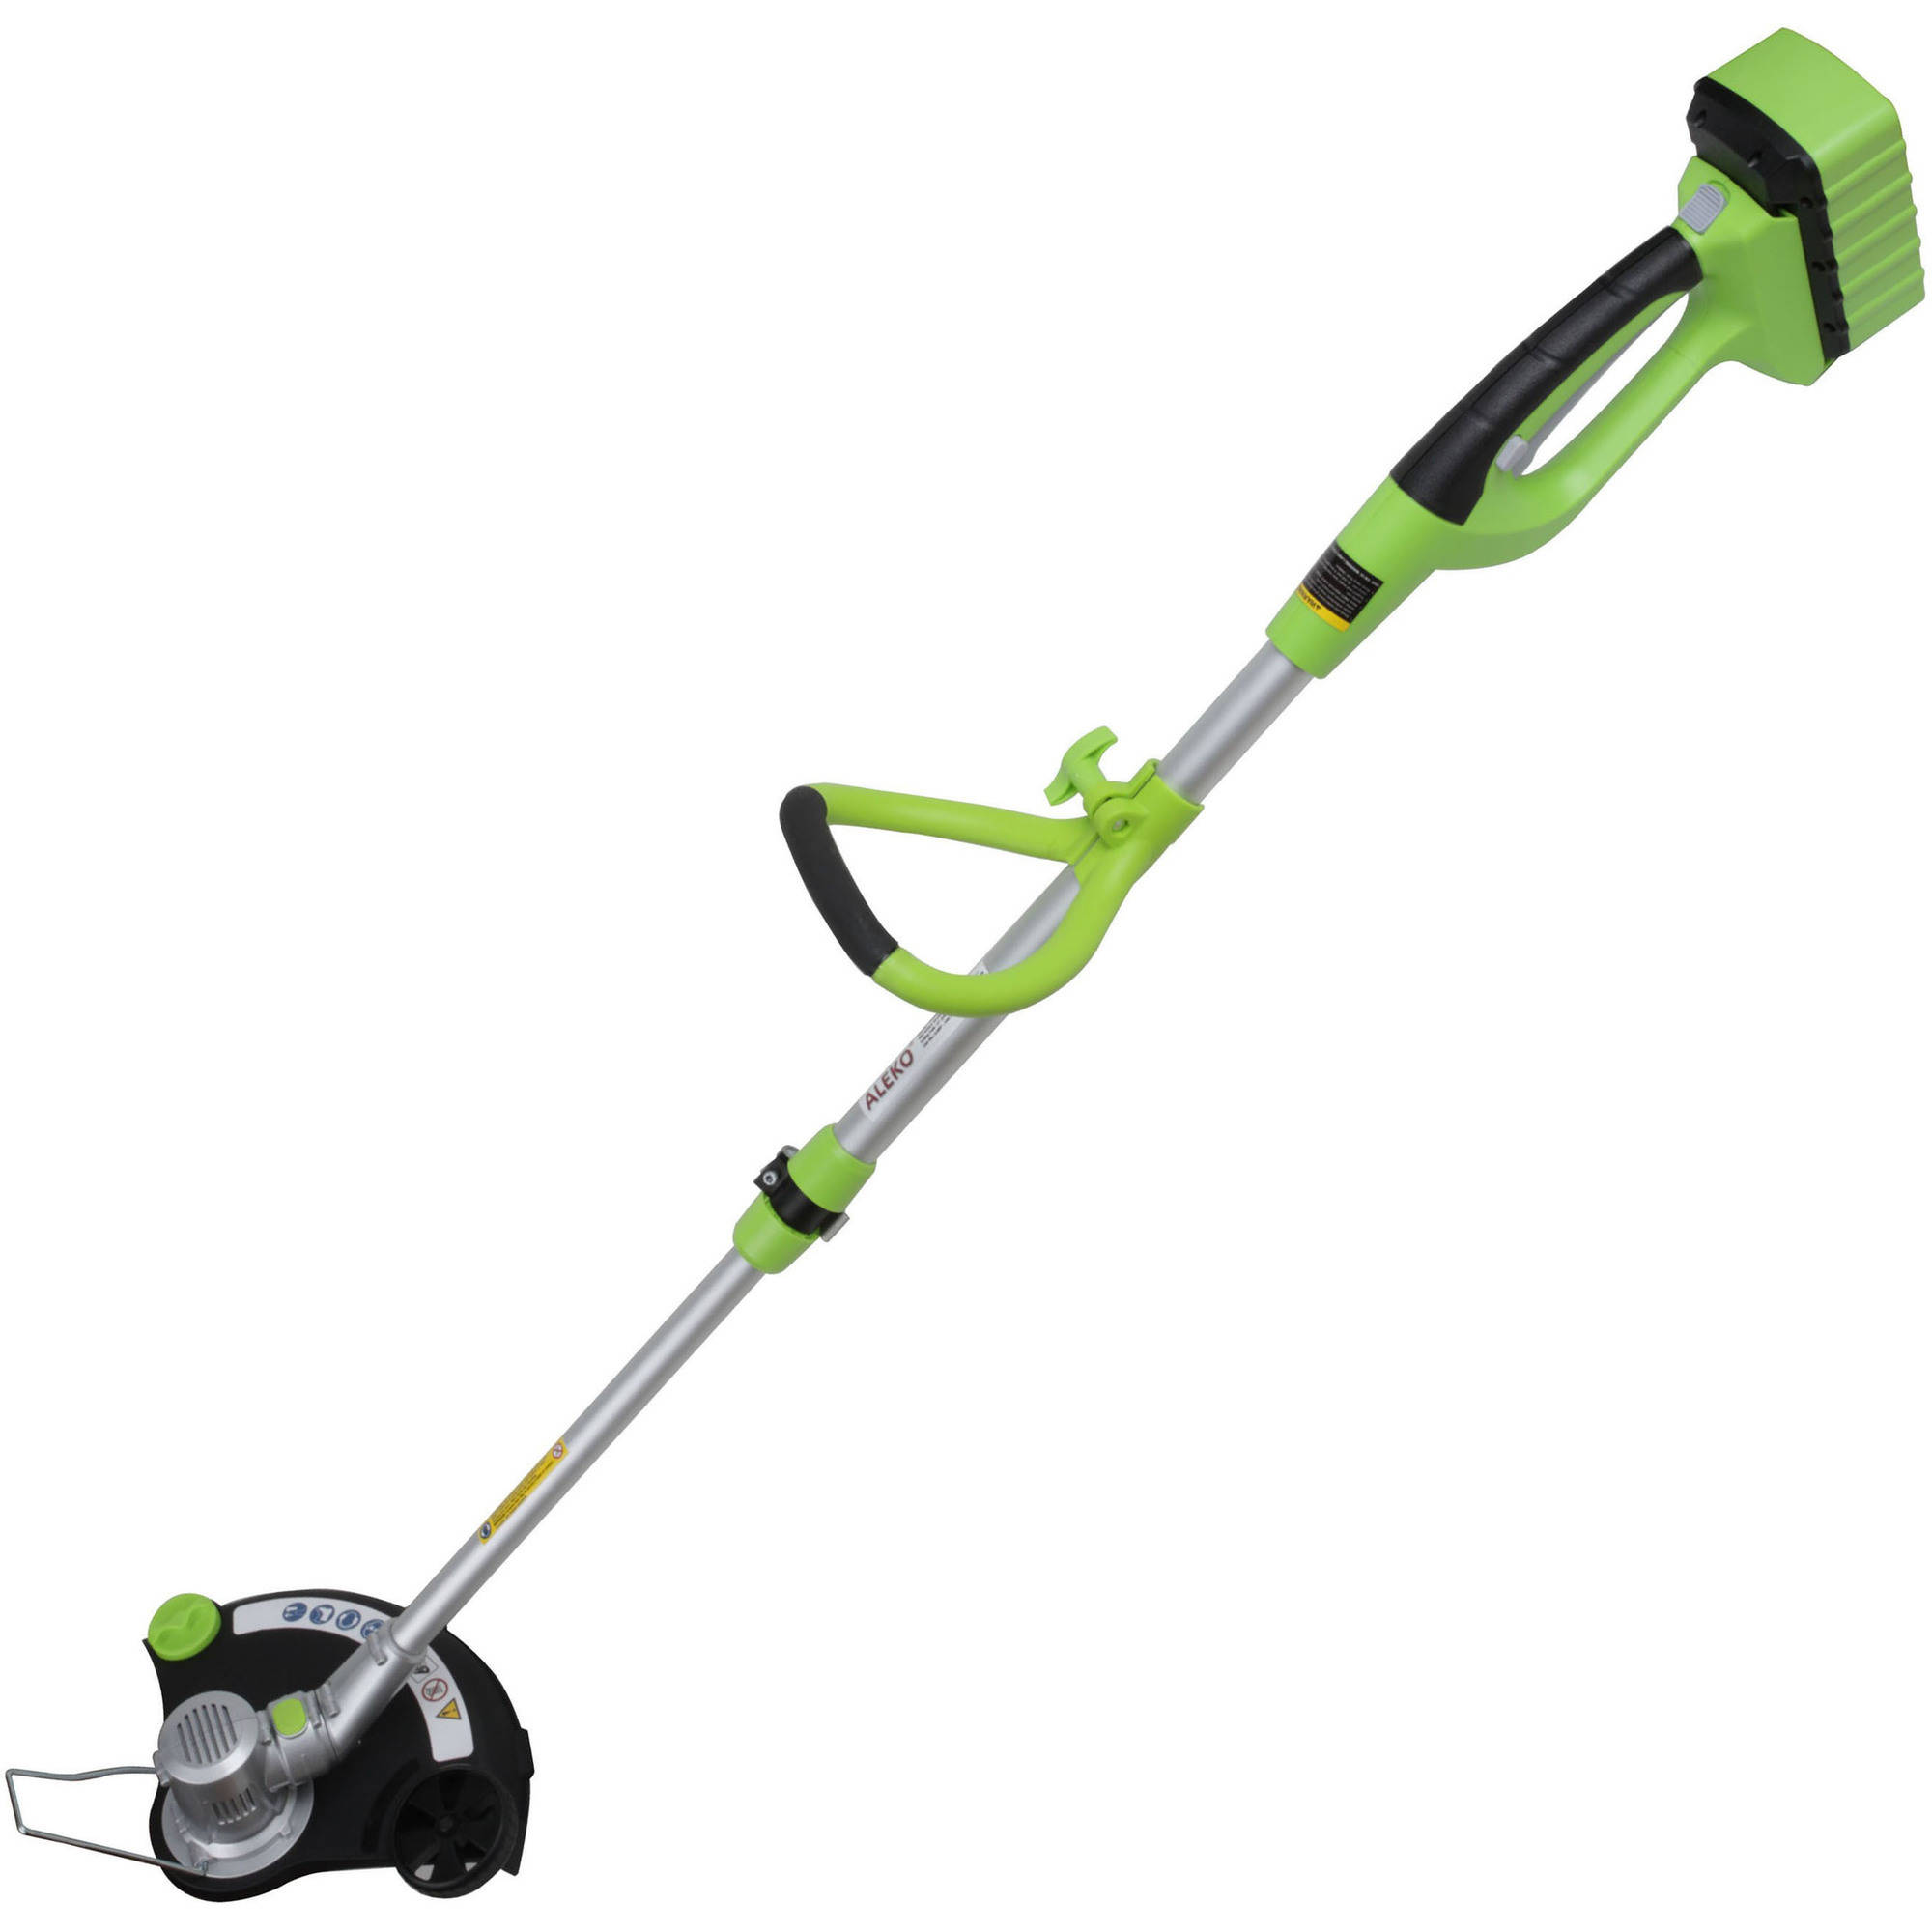 Aleko G15242 Cordless 36V String Grass Trimmer Weedeater Weedwacker by Grass Trimmers